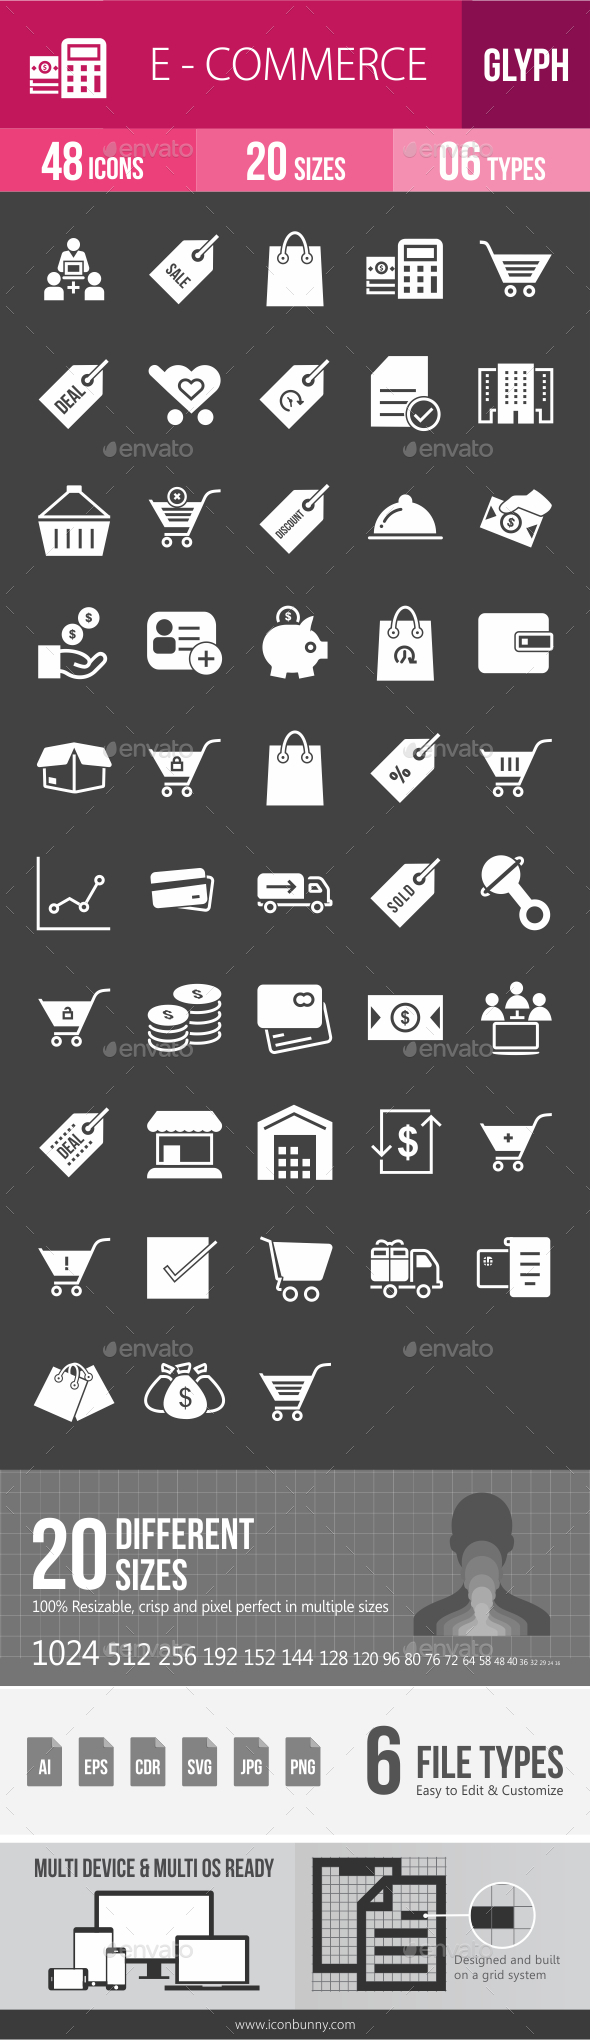 Ecommerce Glyph Inverted Icons